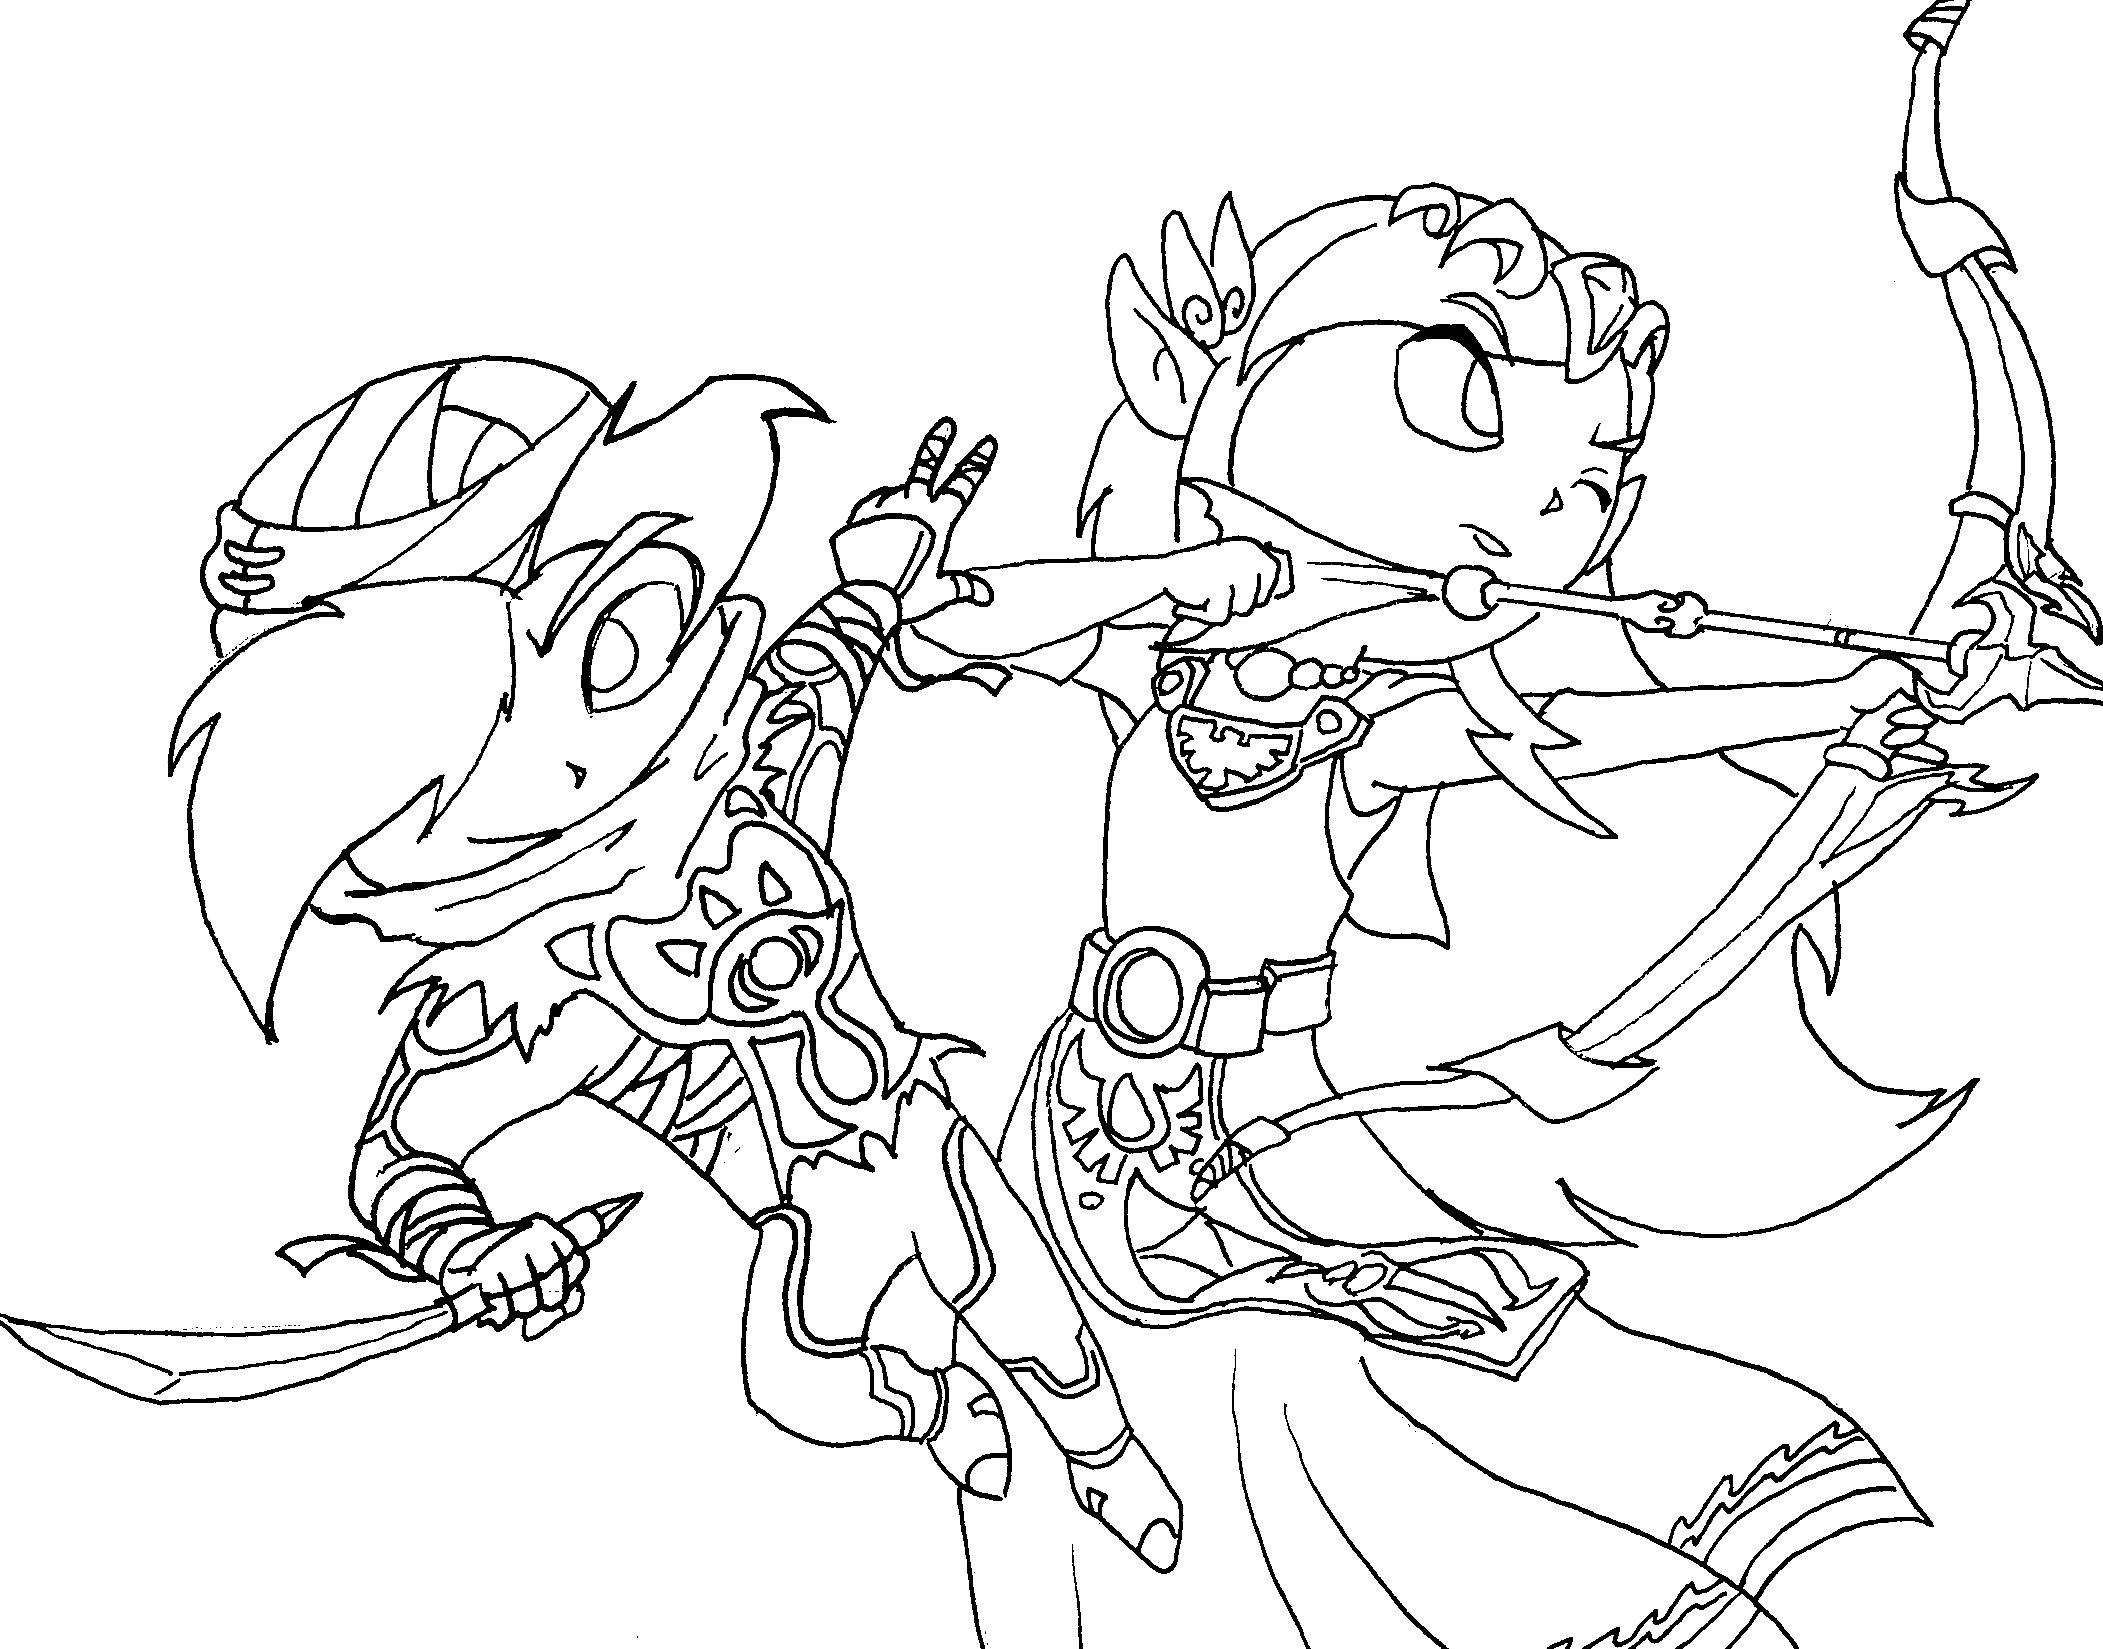 Zelda Line Drawing : Young sheik and zelda lineart by horatiogiovanni on deviantart